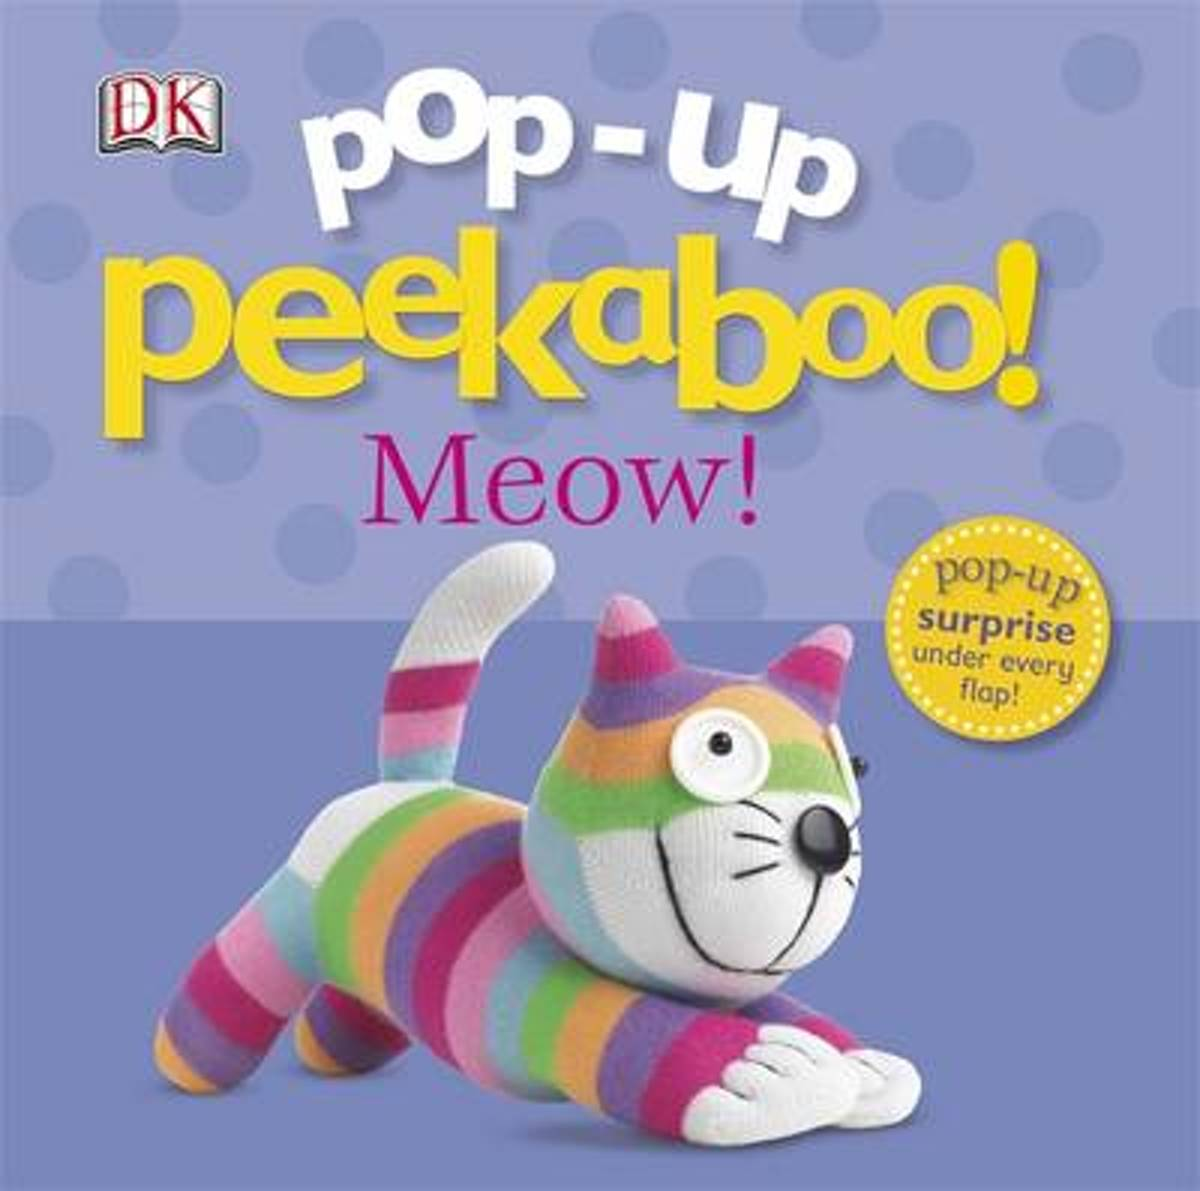 Pop-Up Peekaboo! Meow!